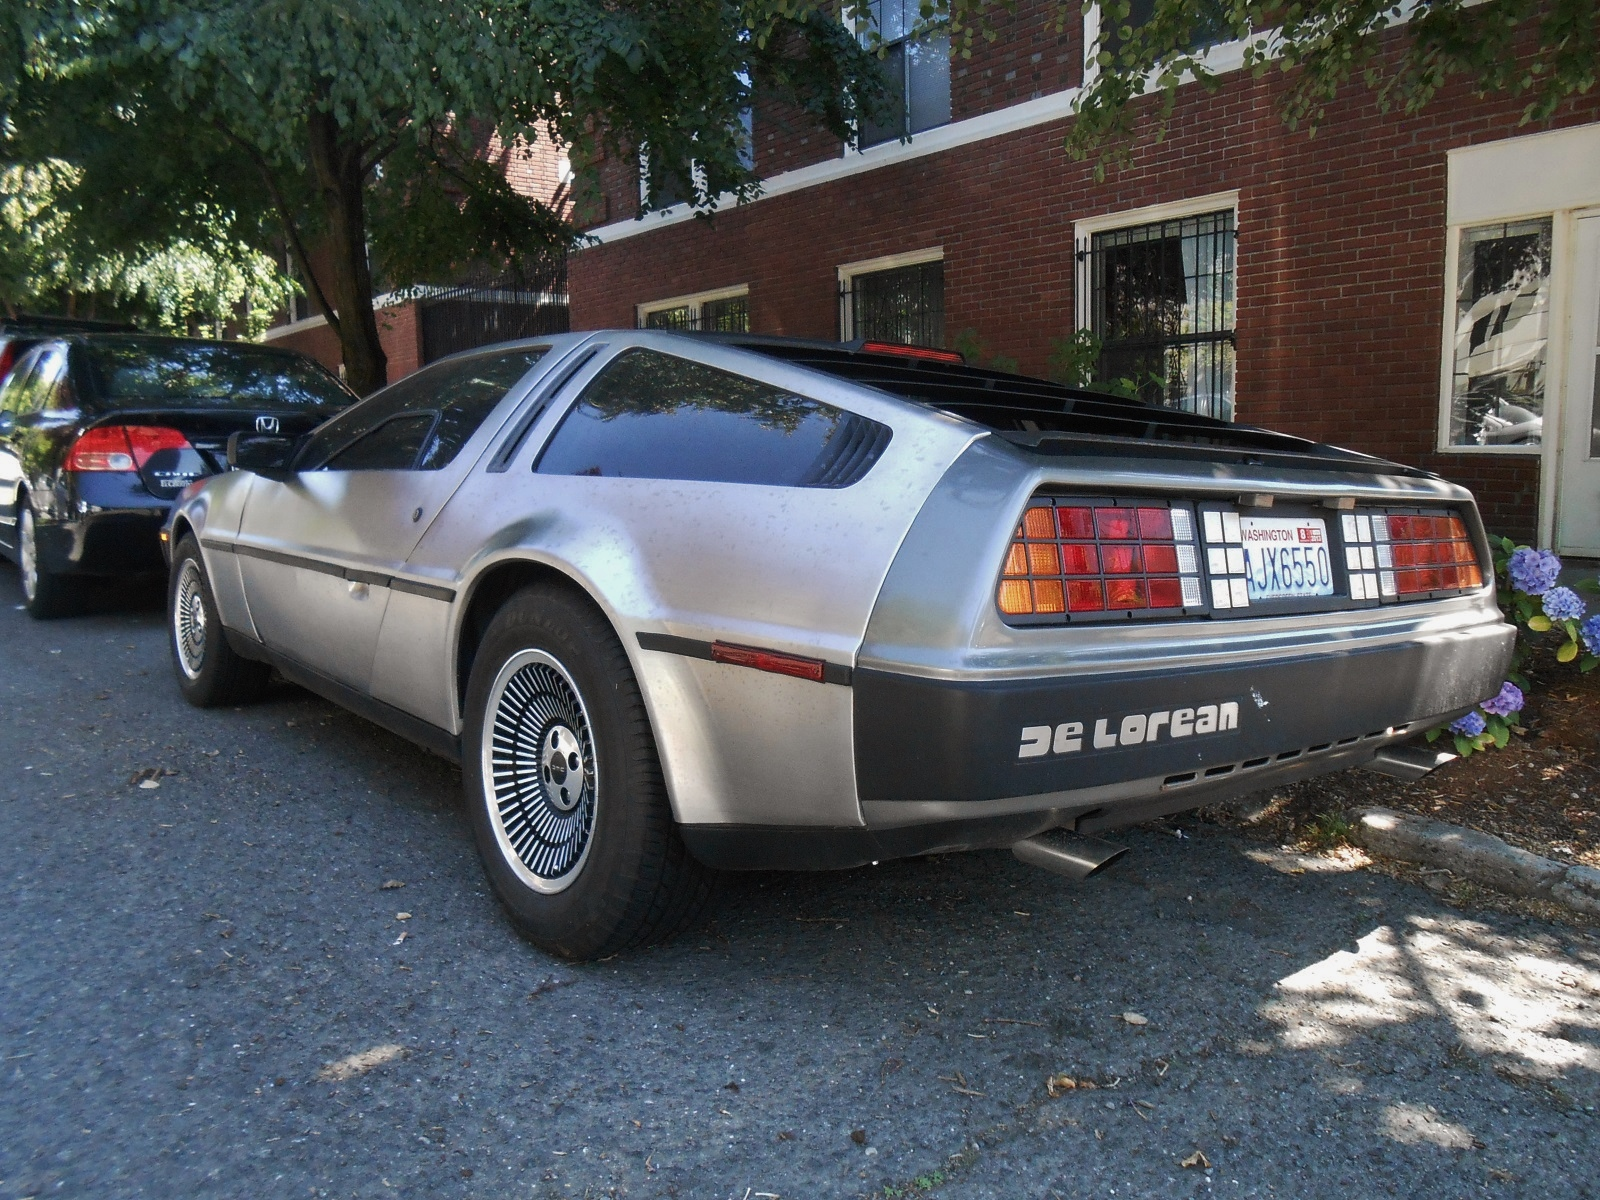 Seattle S Parked Cars 1981 Delorean Dmc 12